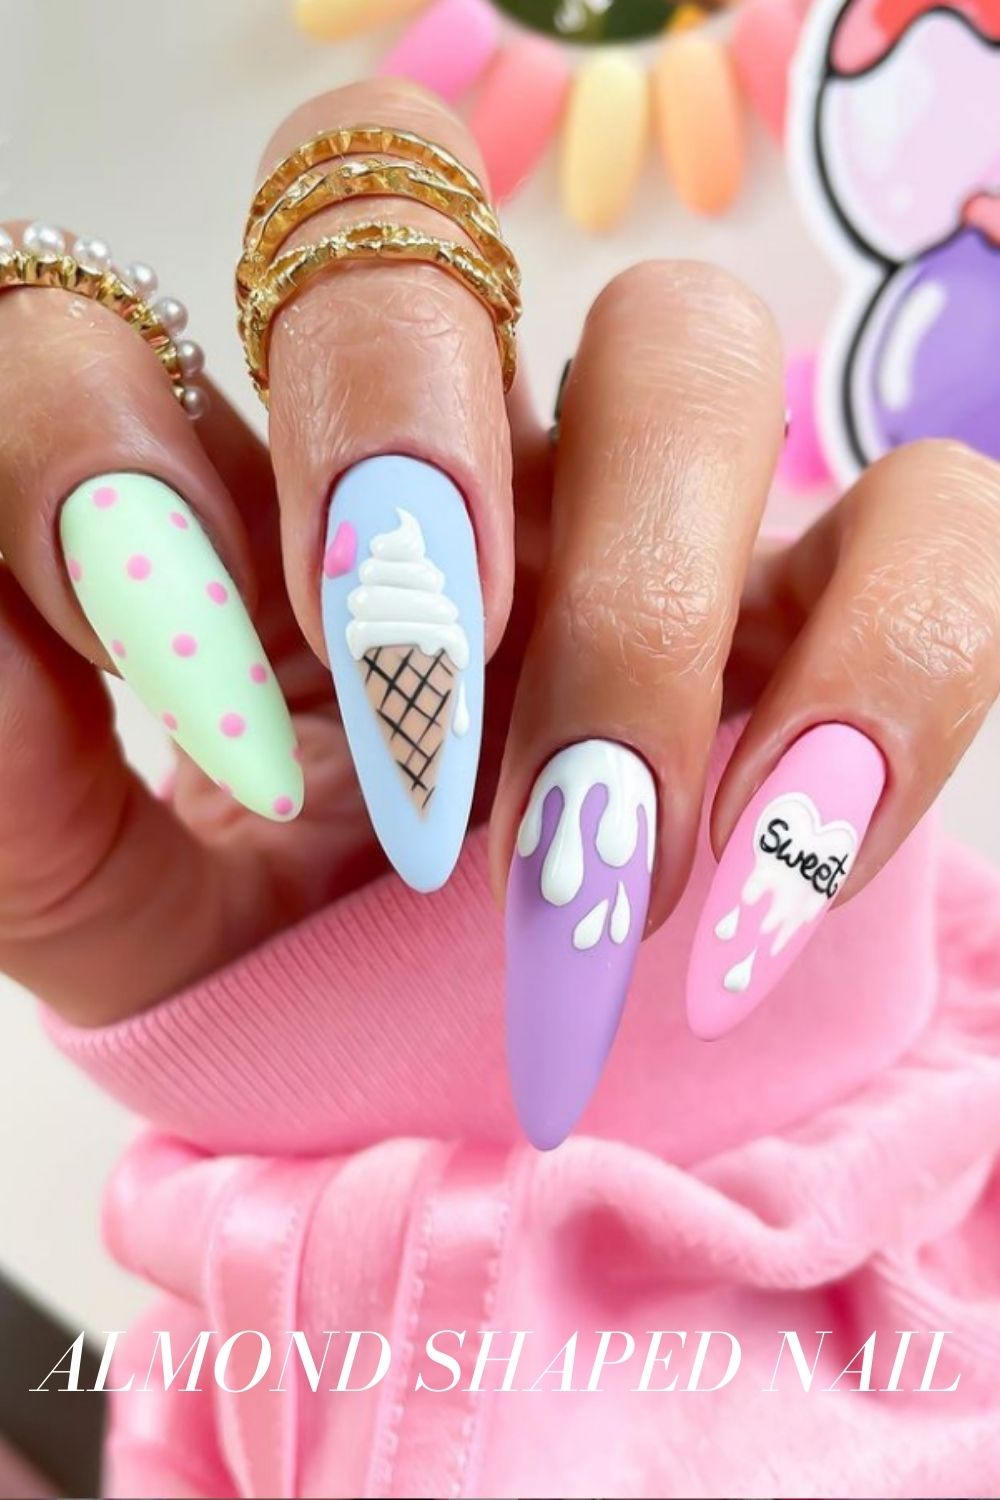 Almond Nail Design is a Consideration for your Next Nail Shape